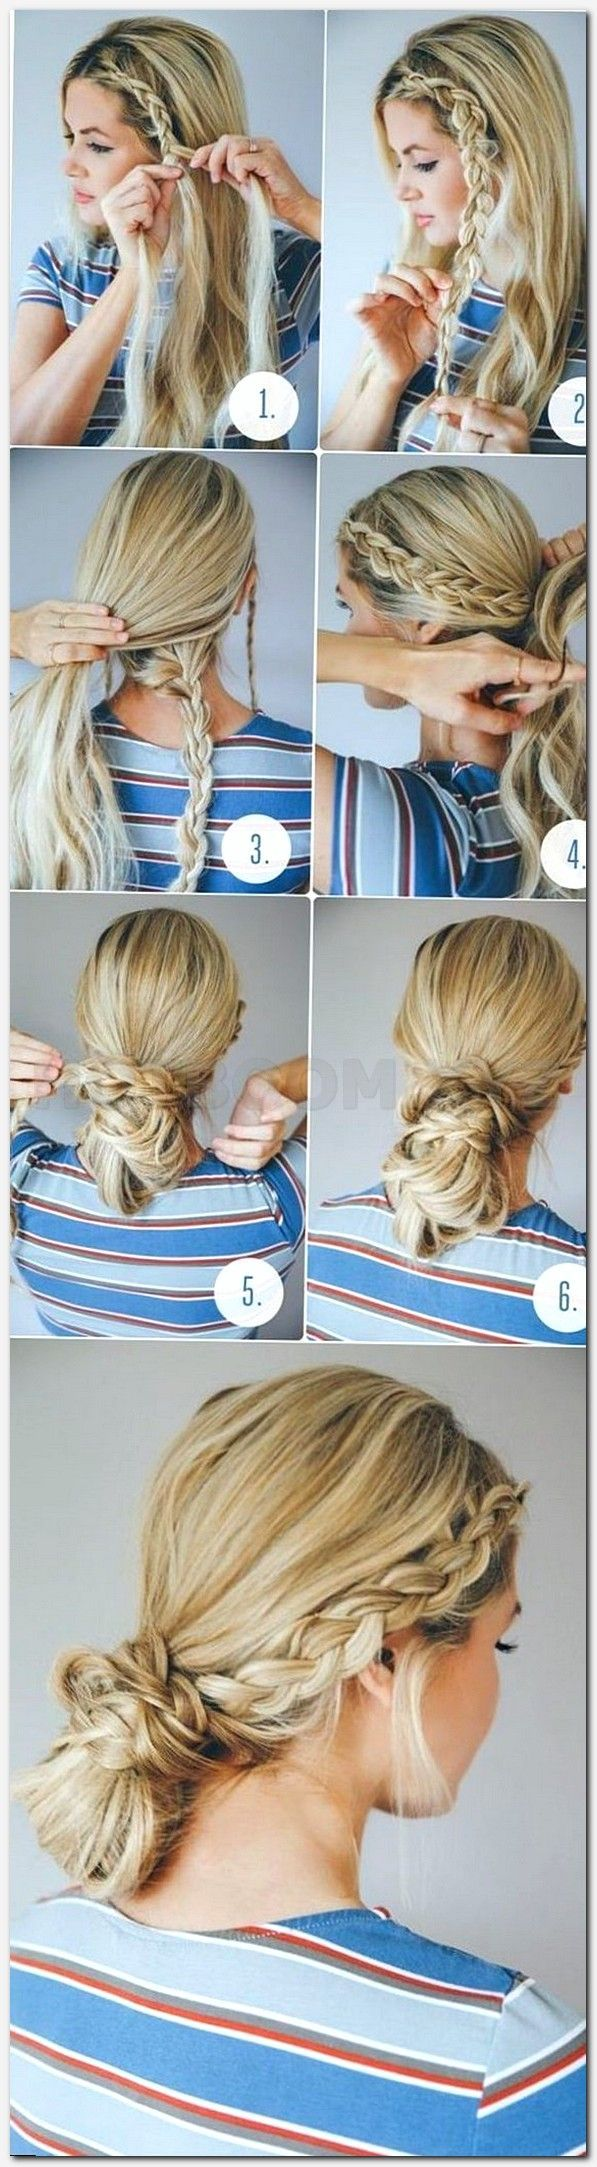 natural hair black hairstyles, bob cut hair, hair pictures, simple & easy hairstyles, short curly hairstyles women, summer wedding hairstyles for long hair, mid length hair with layers, bridesmaids hairstyles up, hairstyles for medium hair up, quick and c